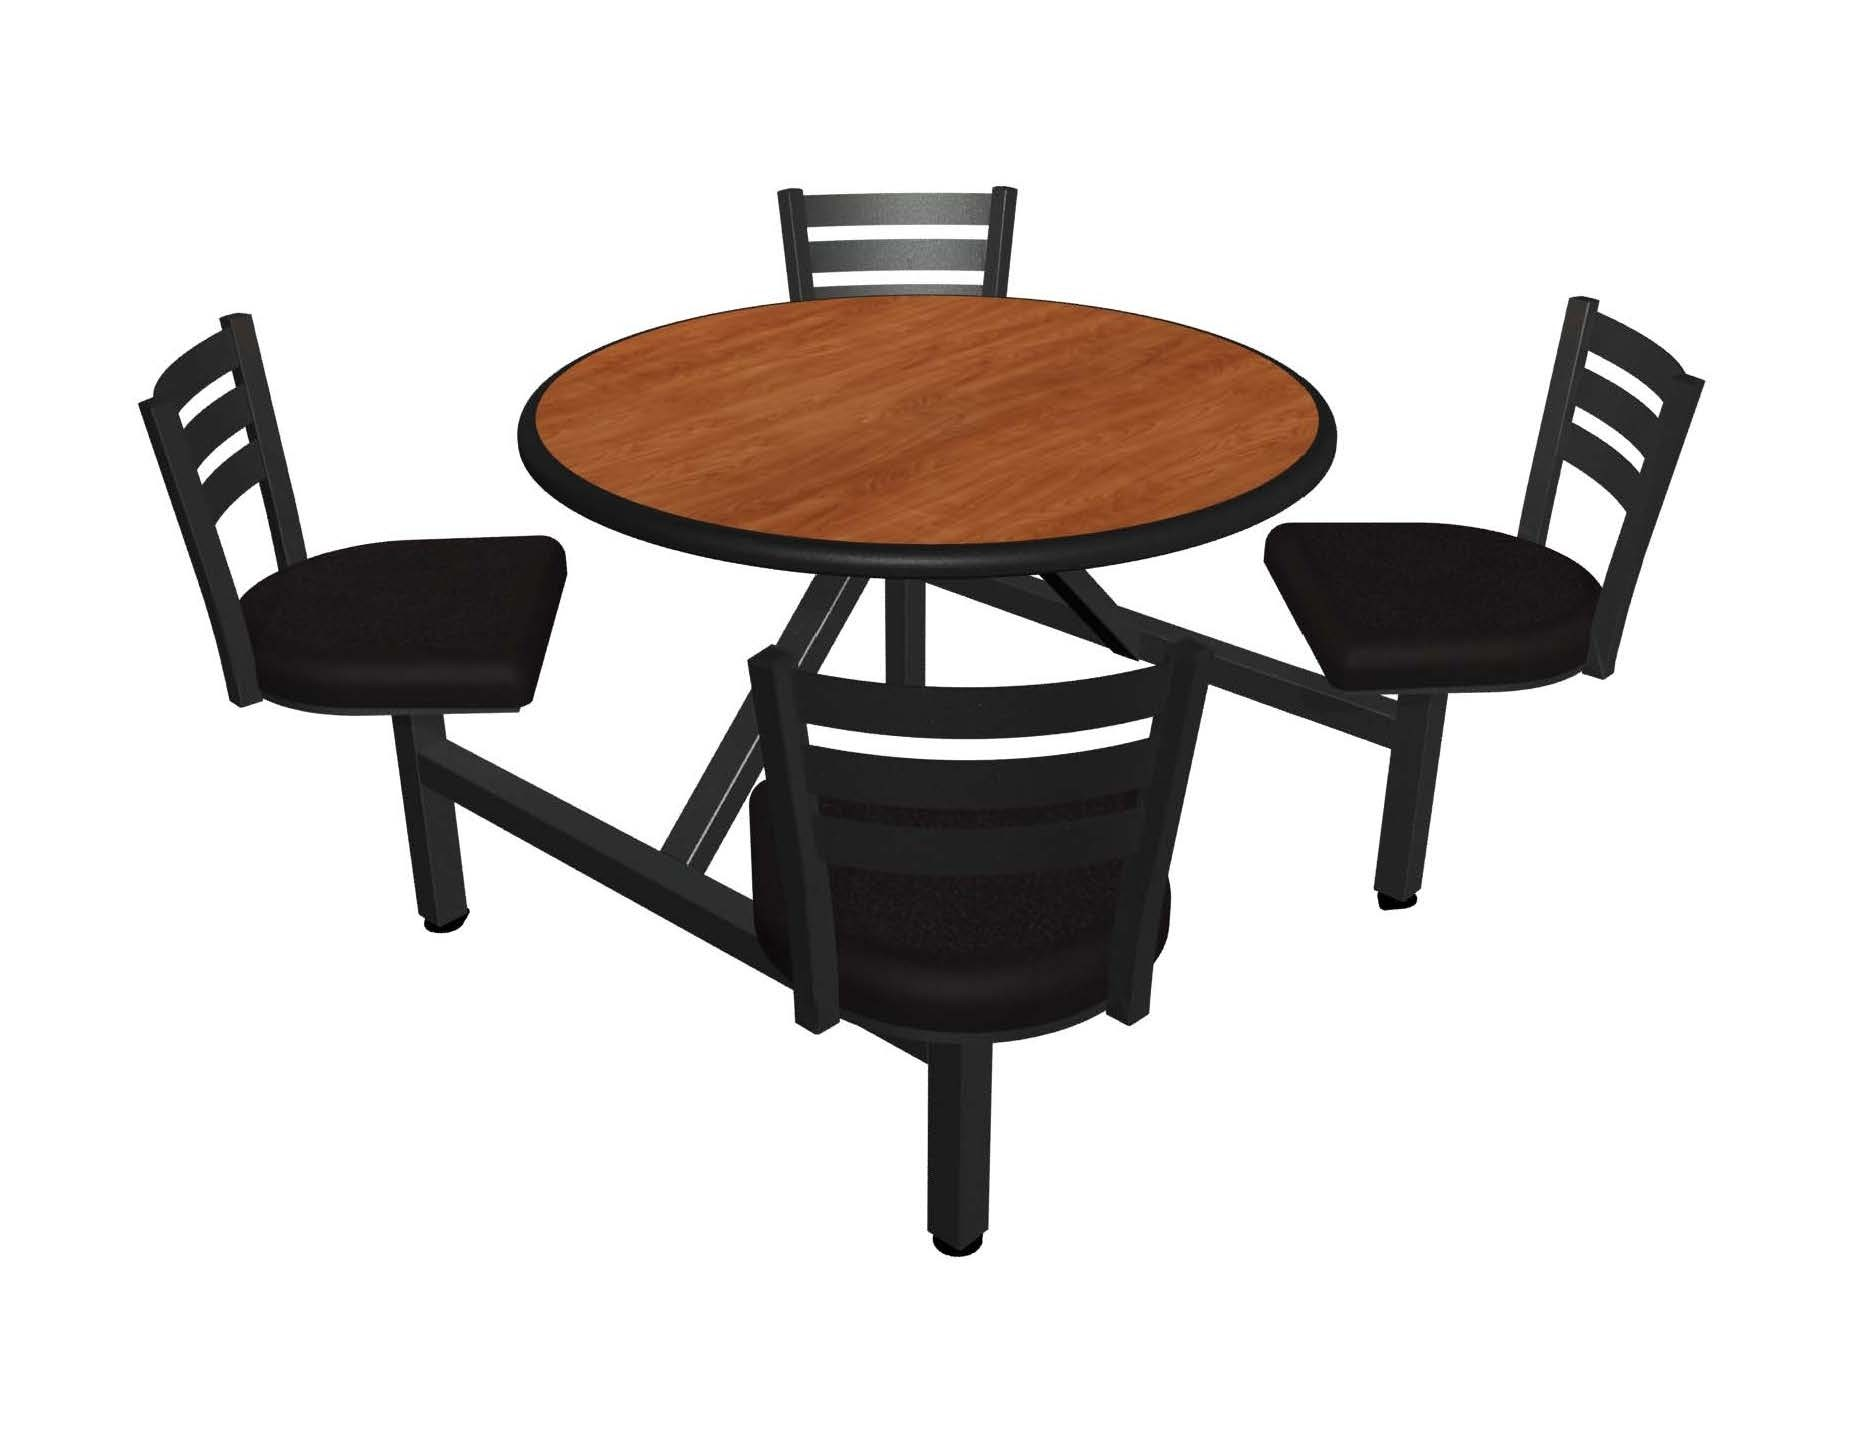 Wild Cherry laminate table top, Black Dur-A-Edge, Quest chairhead with black vinyl seat